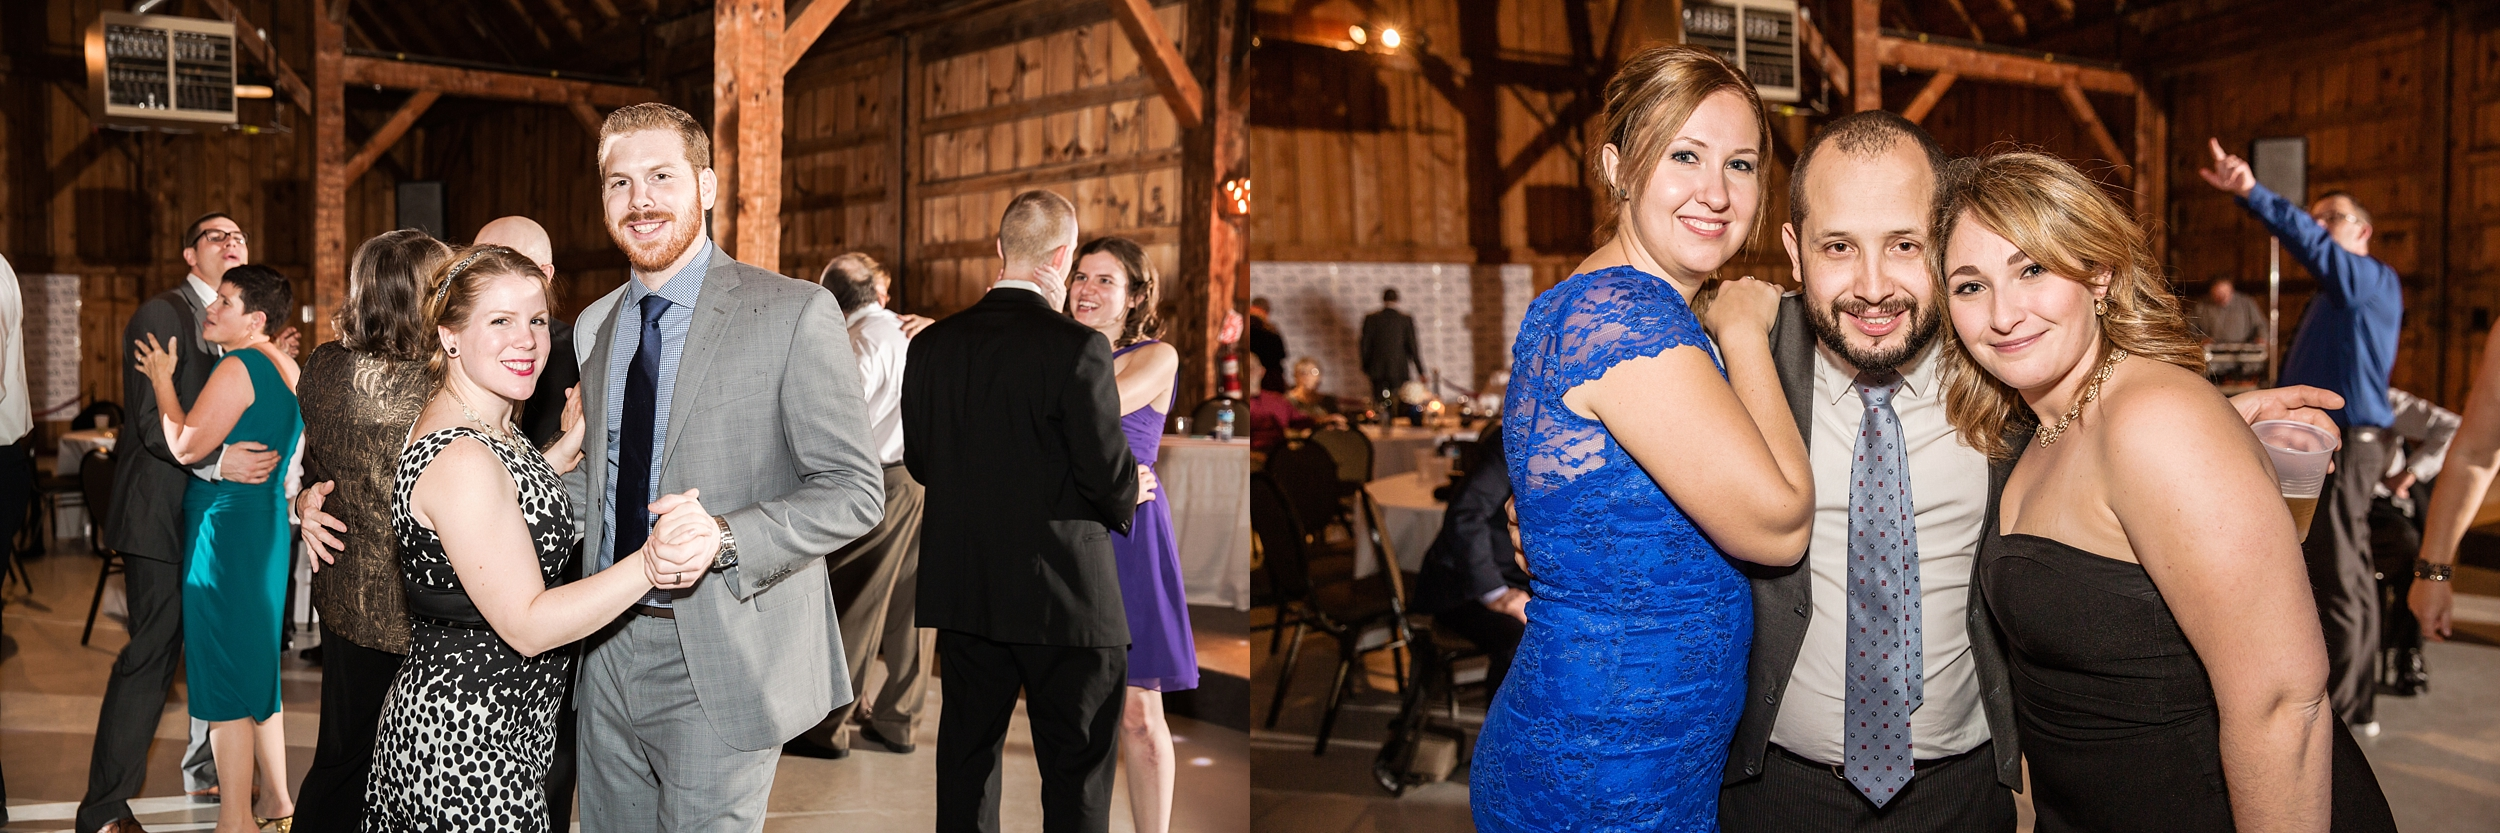 countryheritagebarn-wedding_0106.jpg